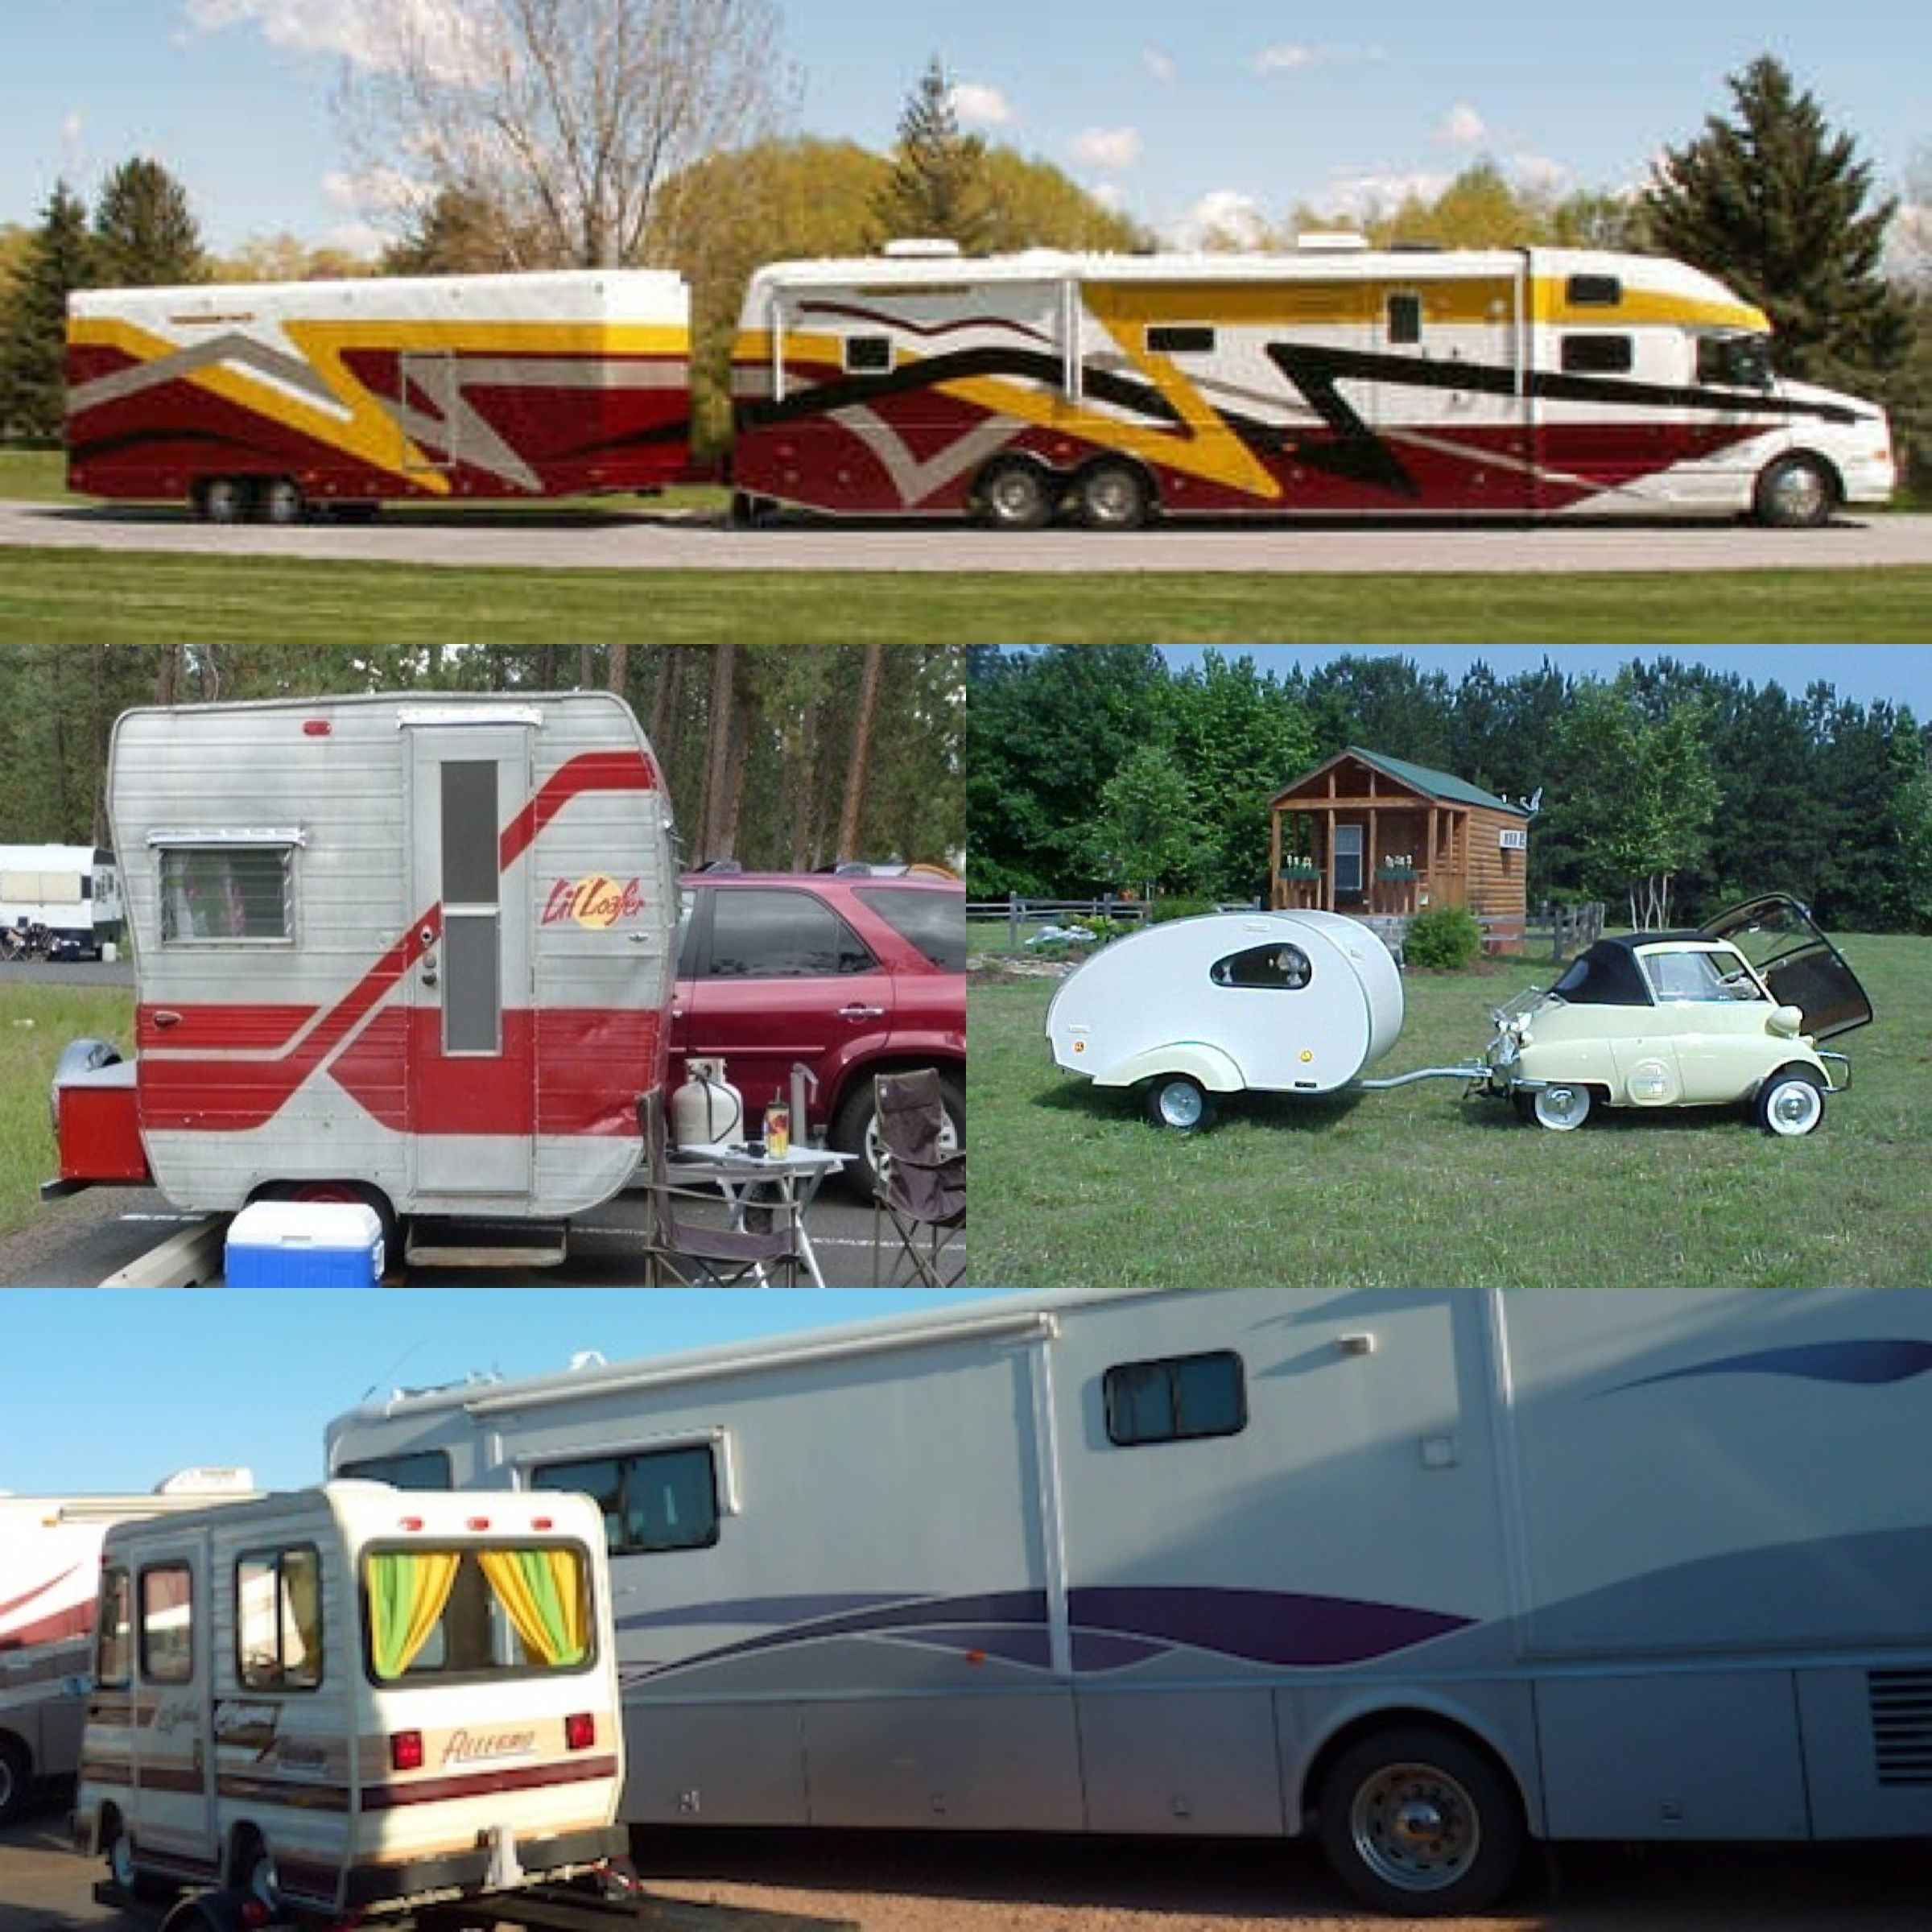 When It Comes To An Rv Camper Or Just Camping In General When Is Too Big Too Big And When Is Too Small Just Way Too Small Wohnwagen Wohnen Wohnraum